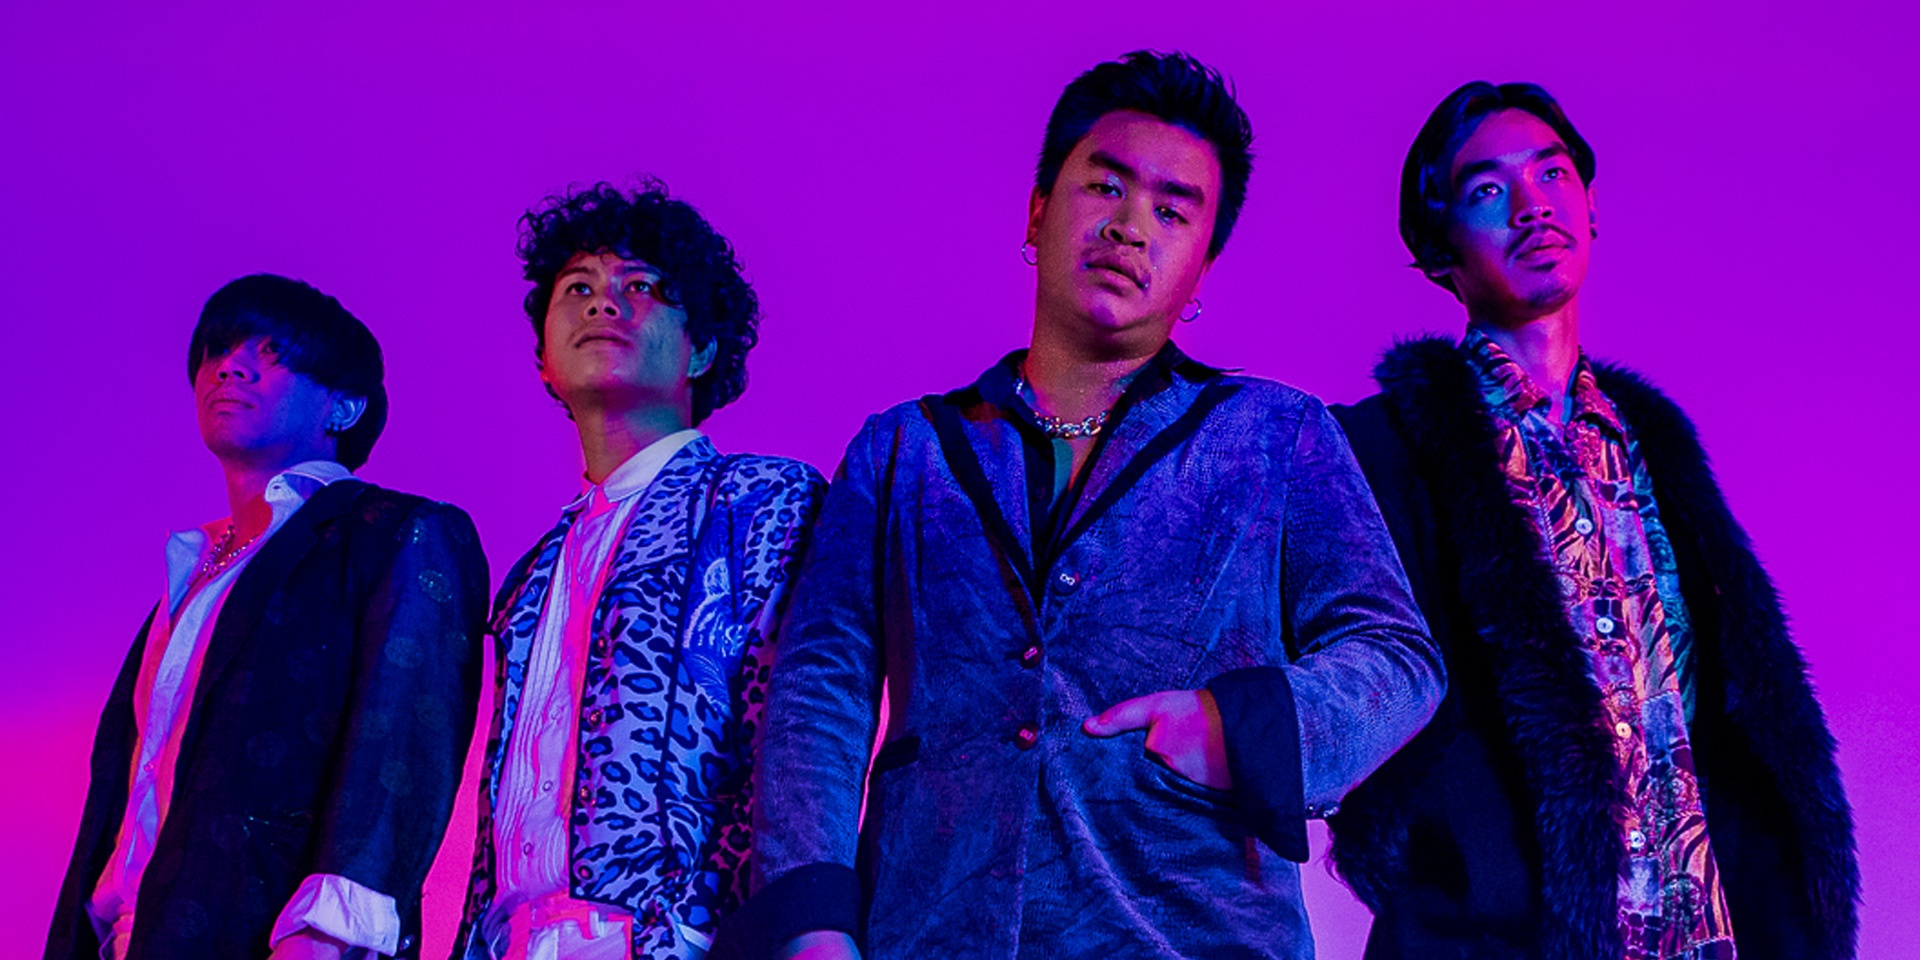 Pandarocketship brings some groovy Thai psychedelic rock to Singapore with The Whitest Crow